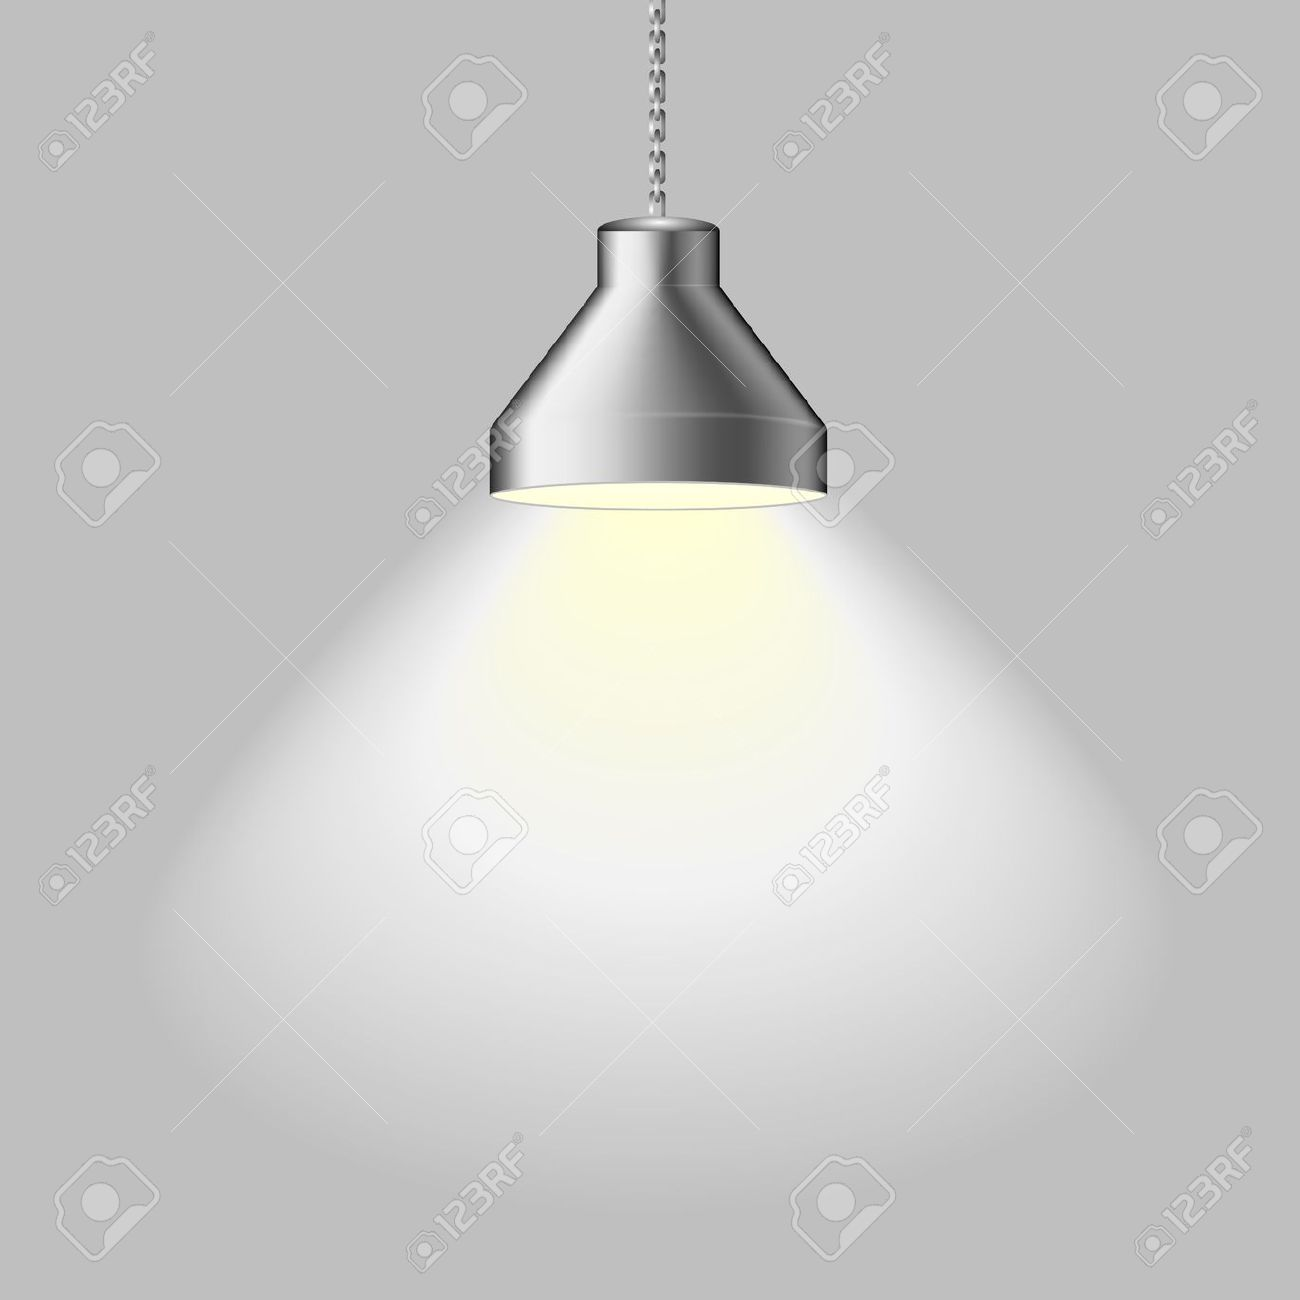 Ceiling Lamp. Free Arm Ceiling Lamp Lamps With. Trendy Yeelight.